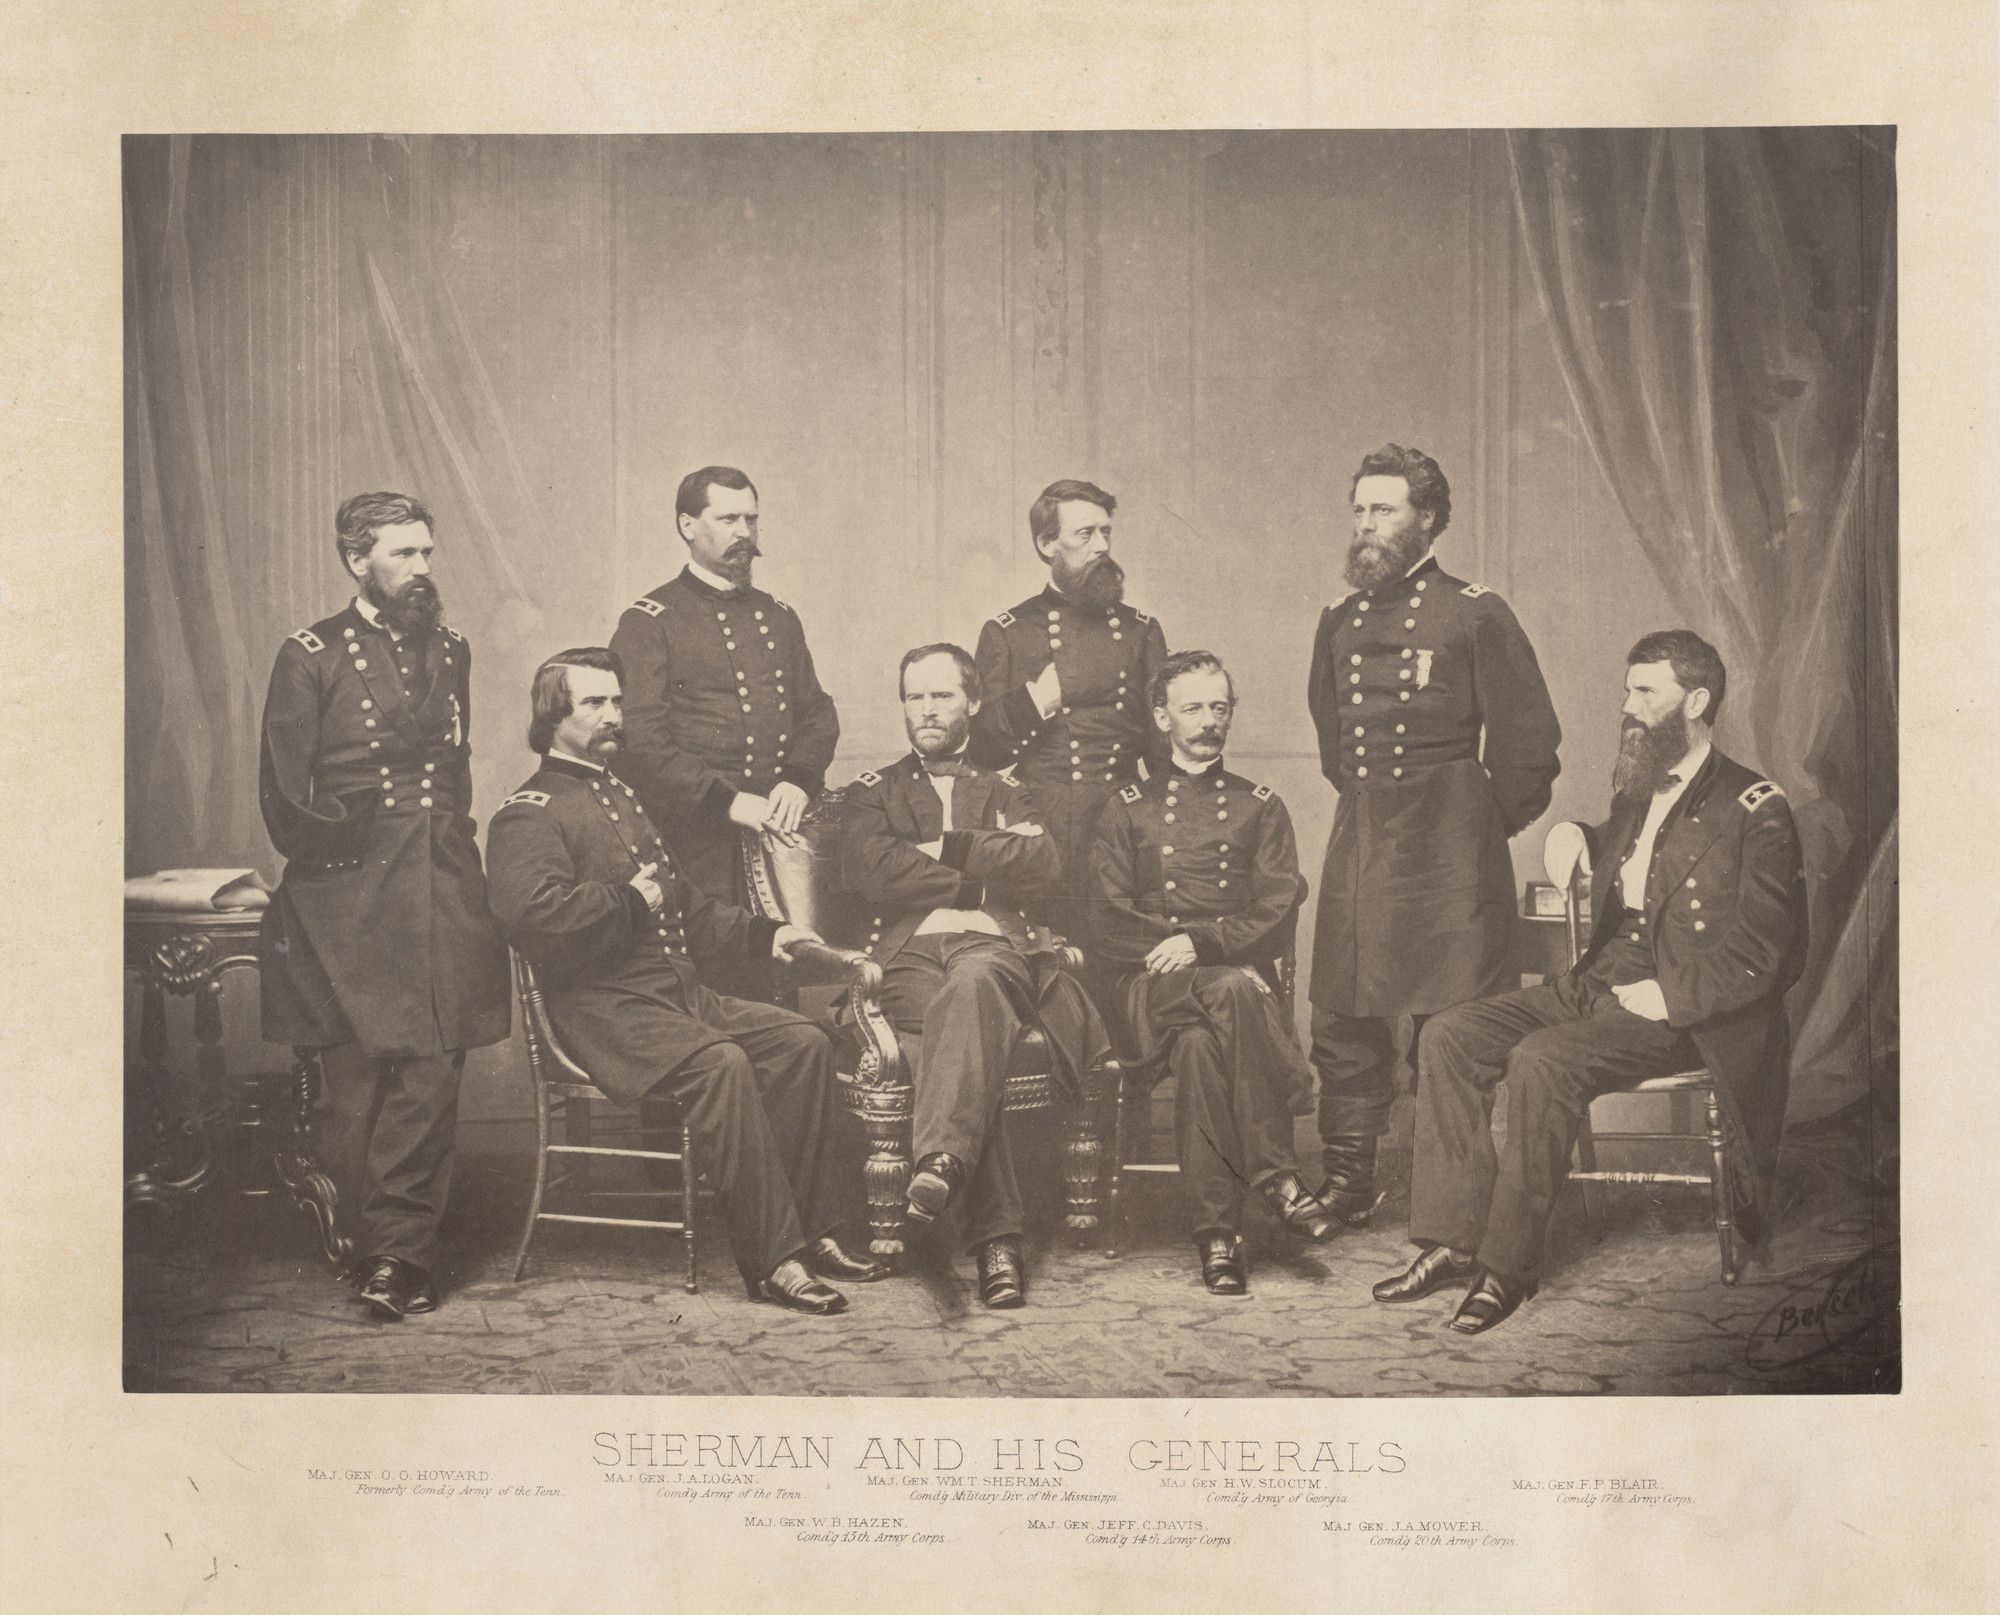 George Barnard. Sherman and his Generals from the album Photographic Views of Sherman's Campaign. 1864-65